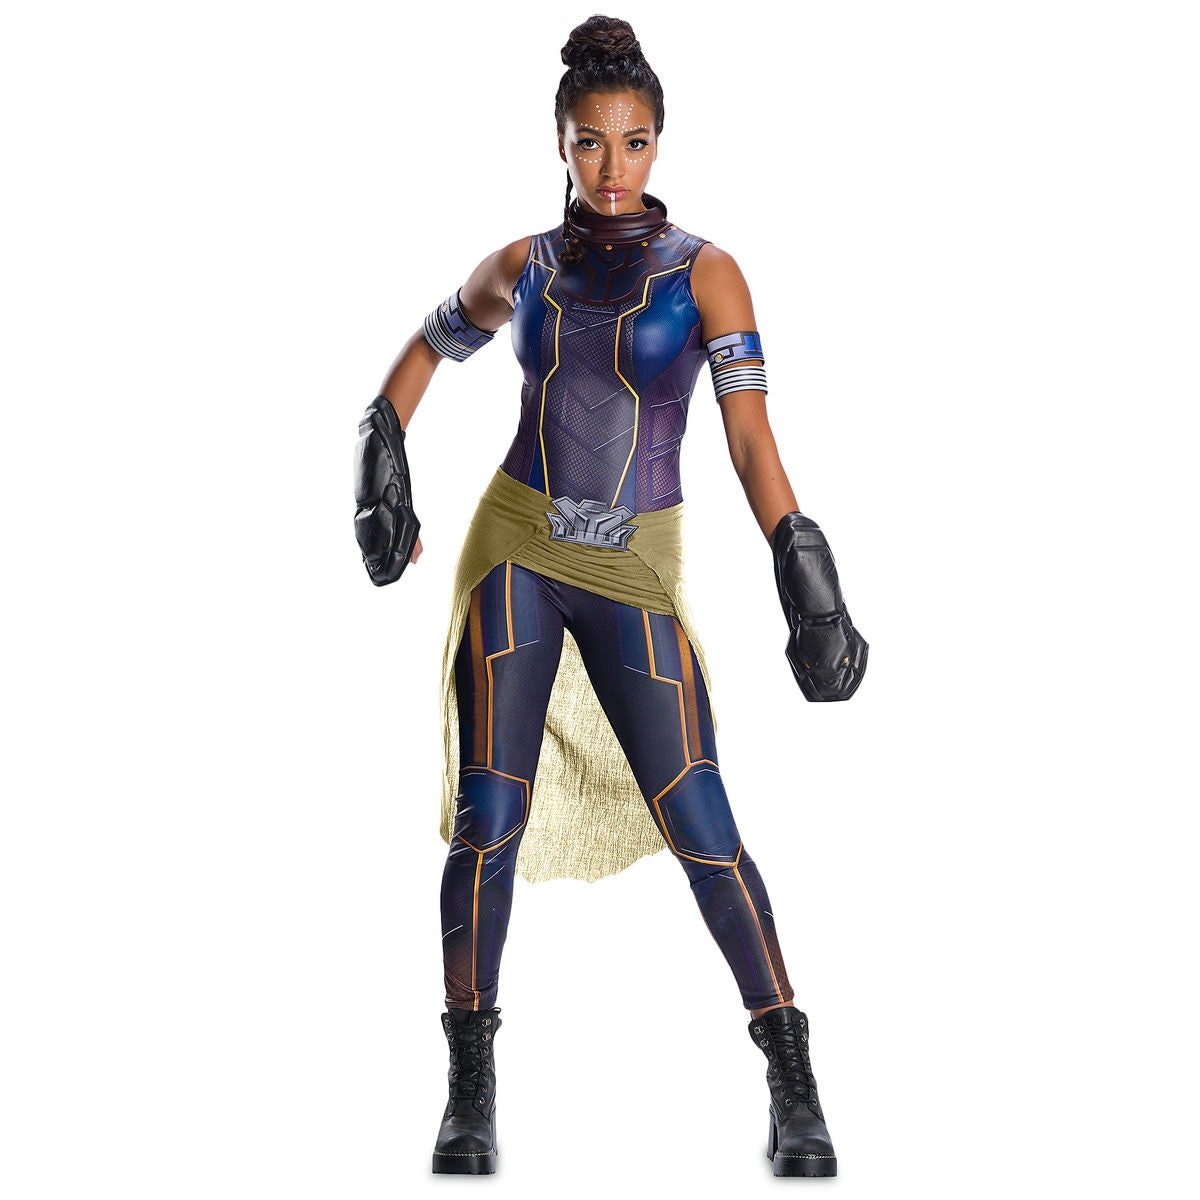 Shuri Deluxe Costume for Adults by Rubie's - Black Panther